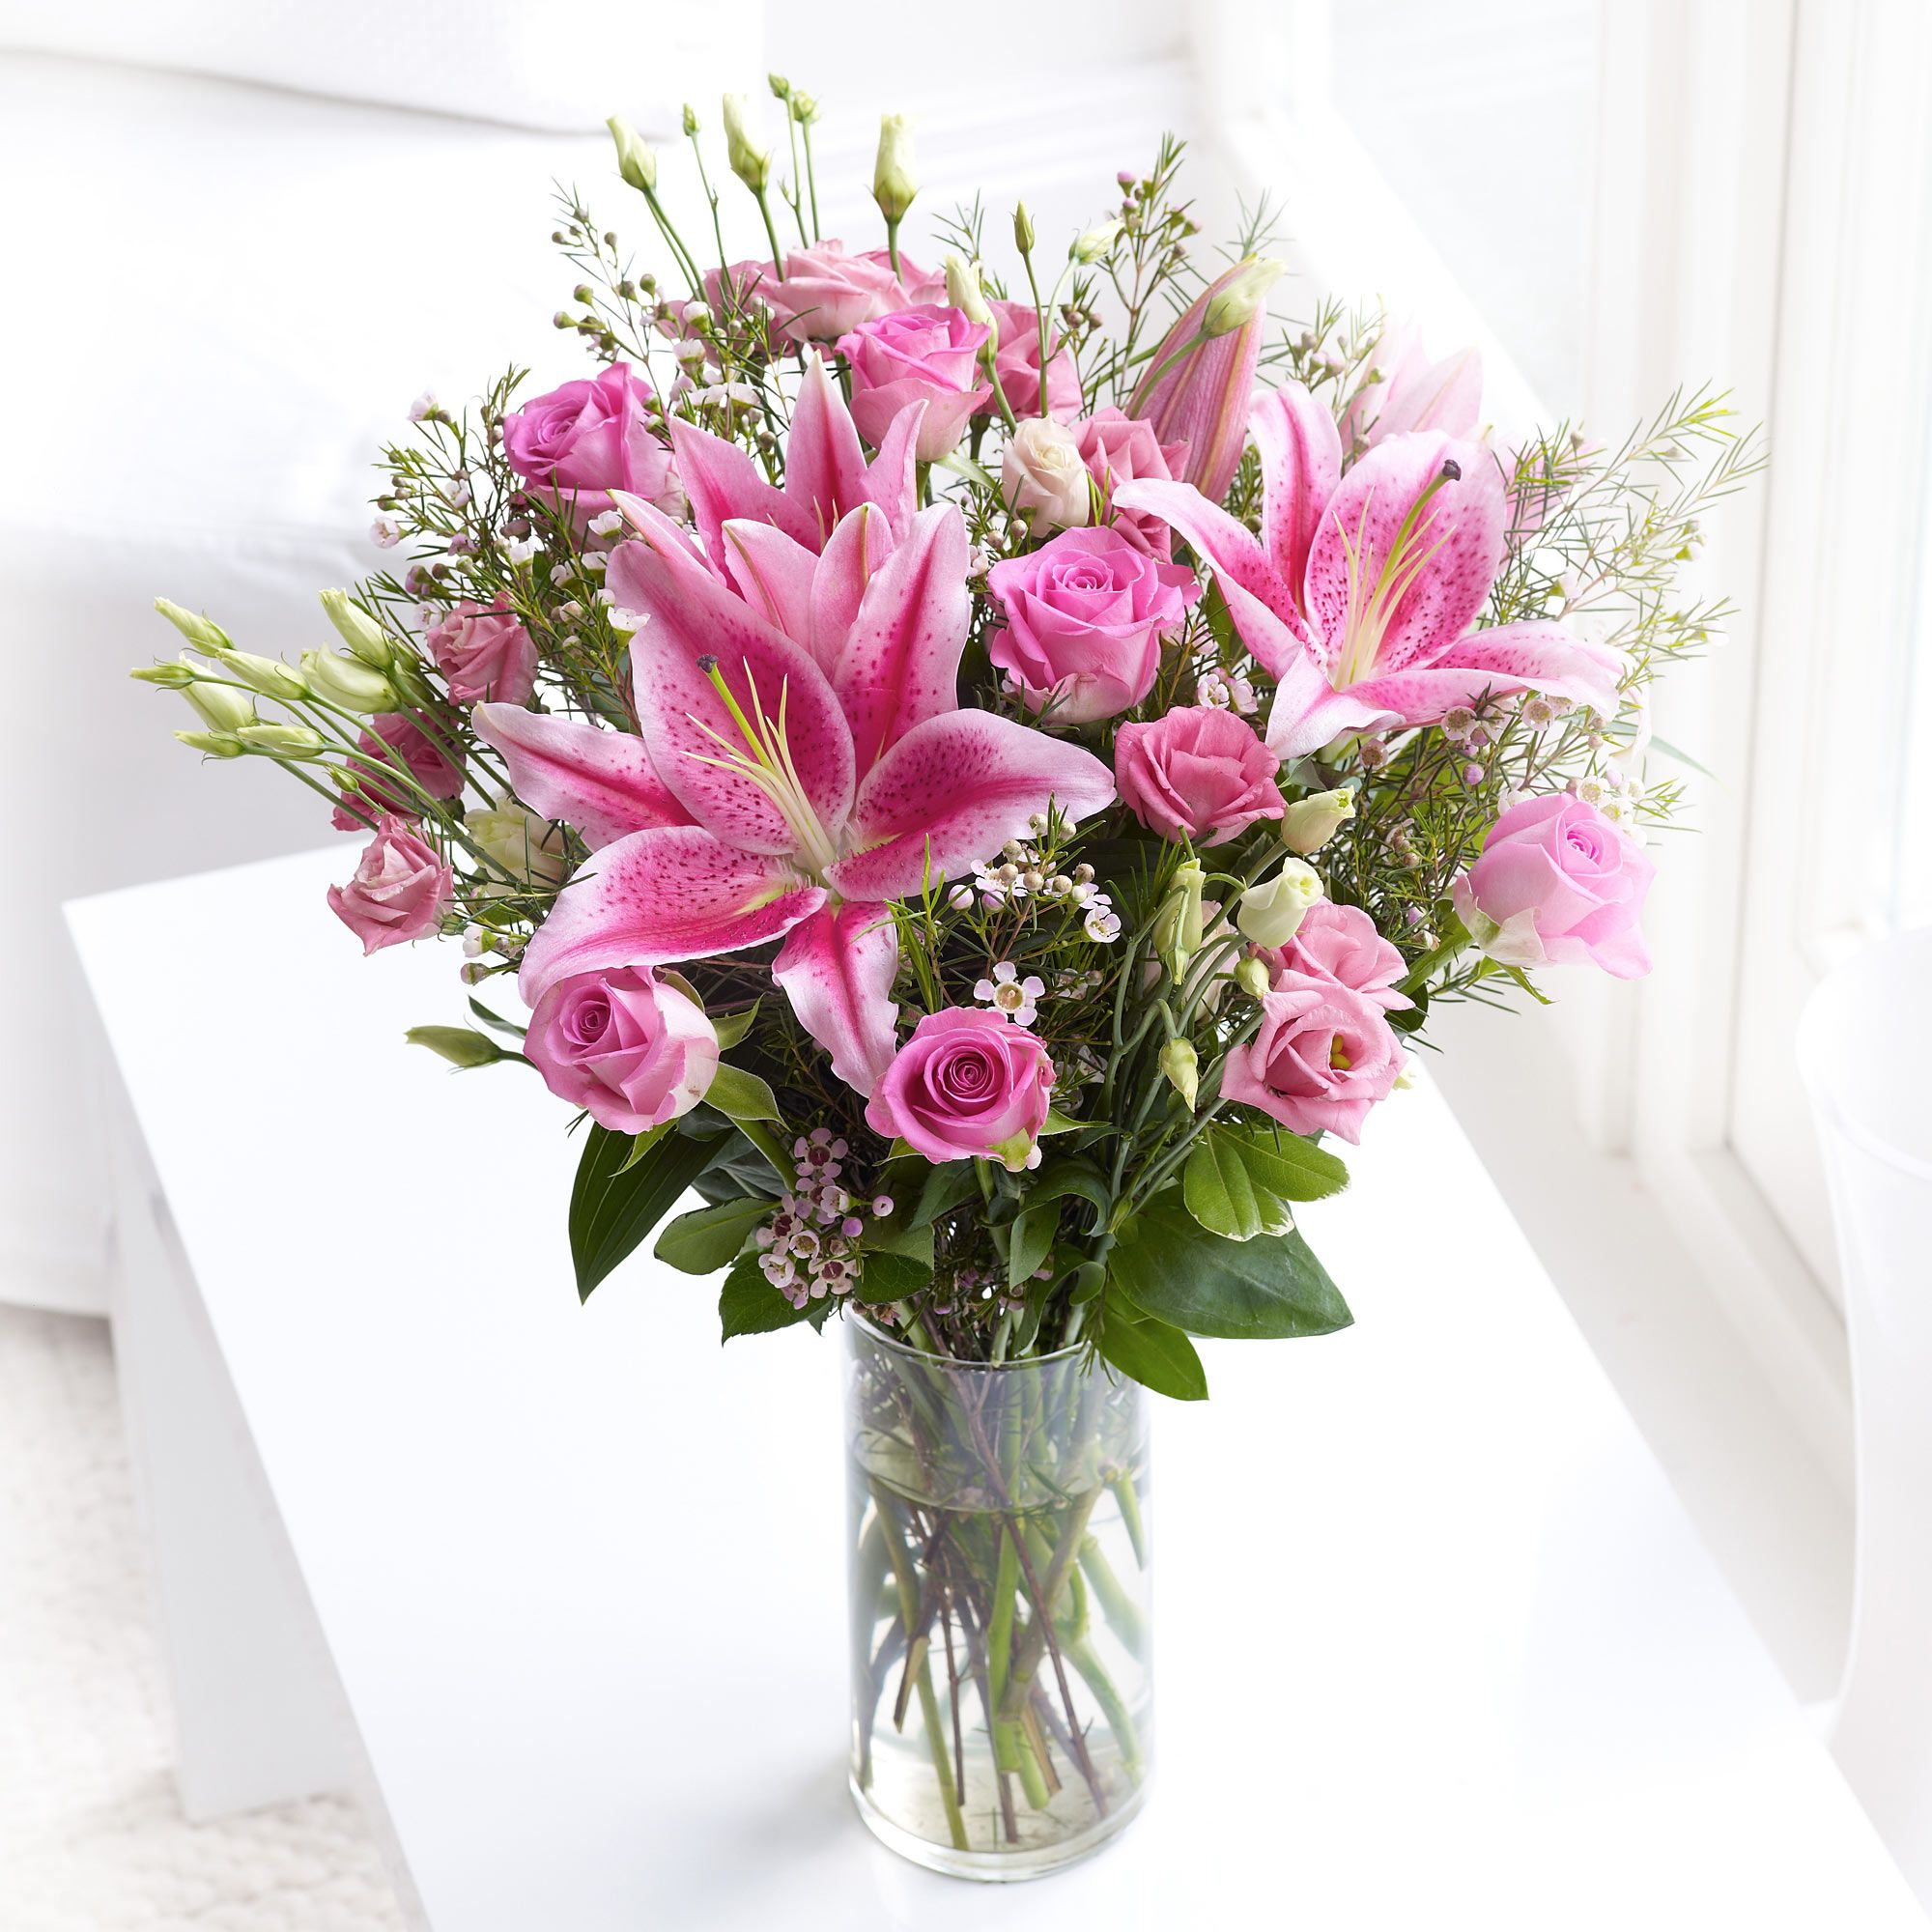 The exquisite combination of Kenyan roses and pink